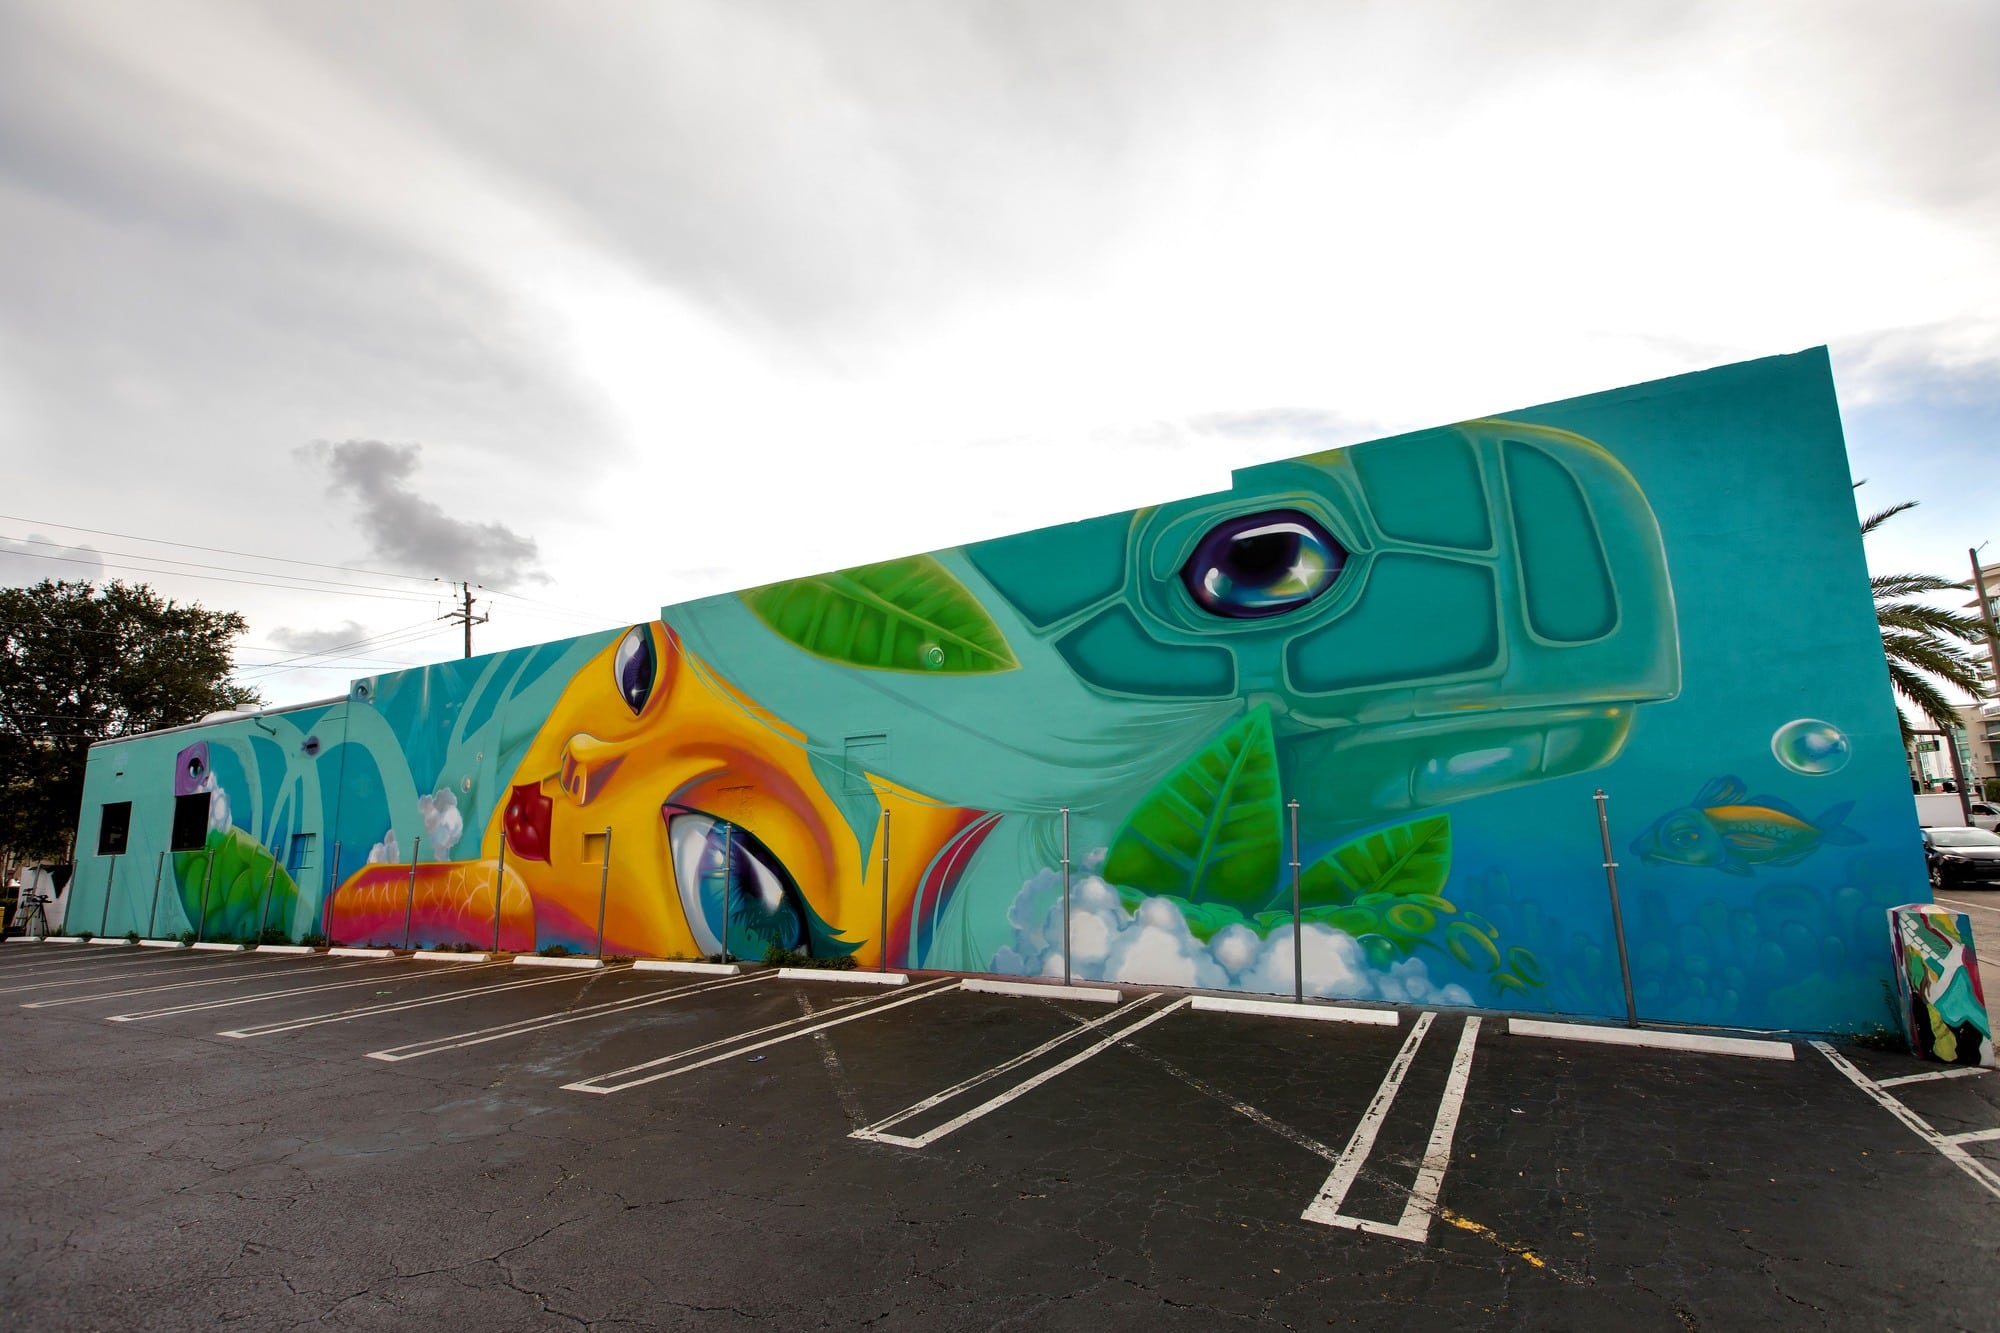 Mural by Yuhmi Collective in Hollywood, Florida